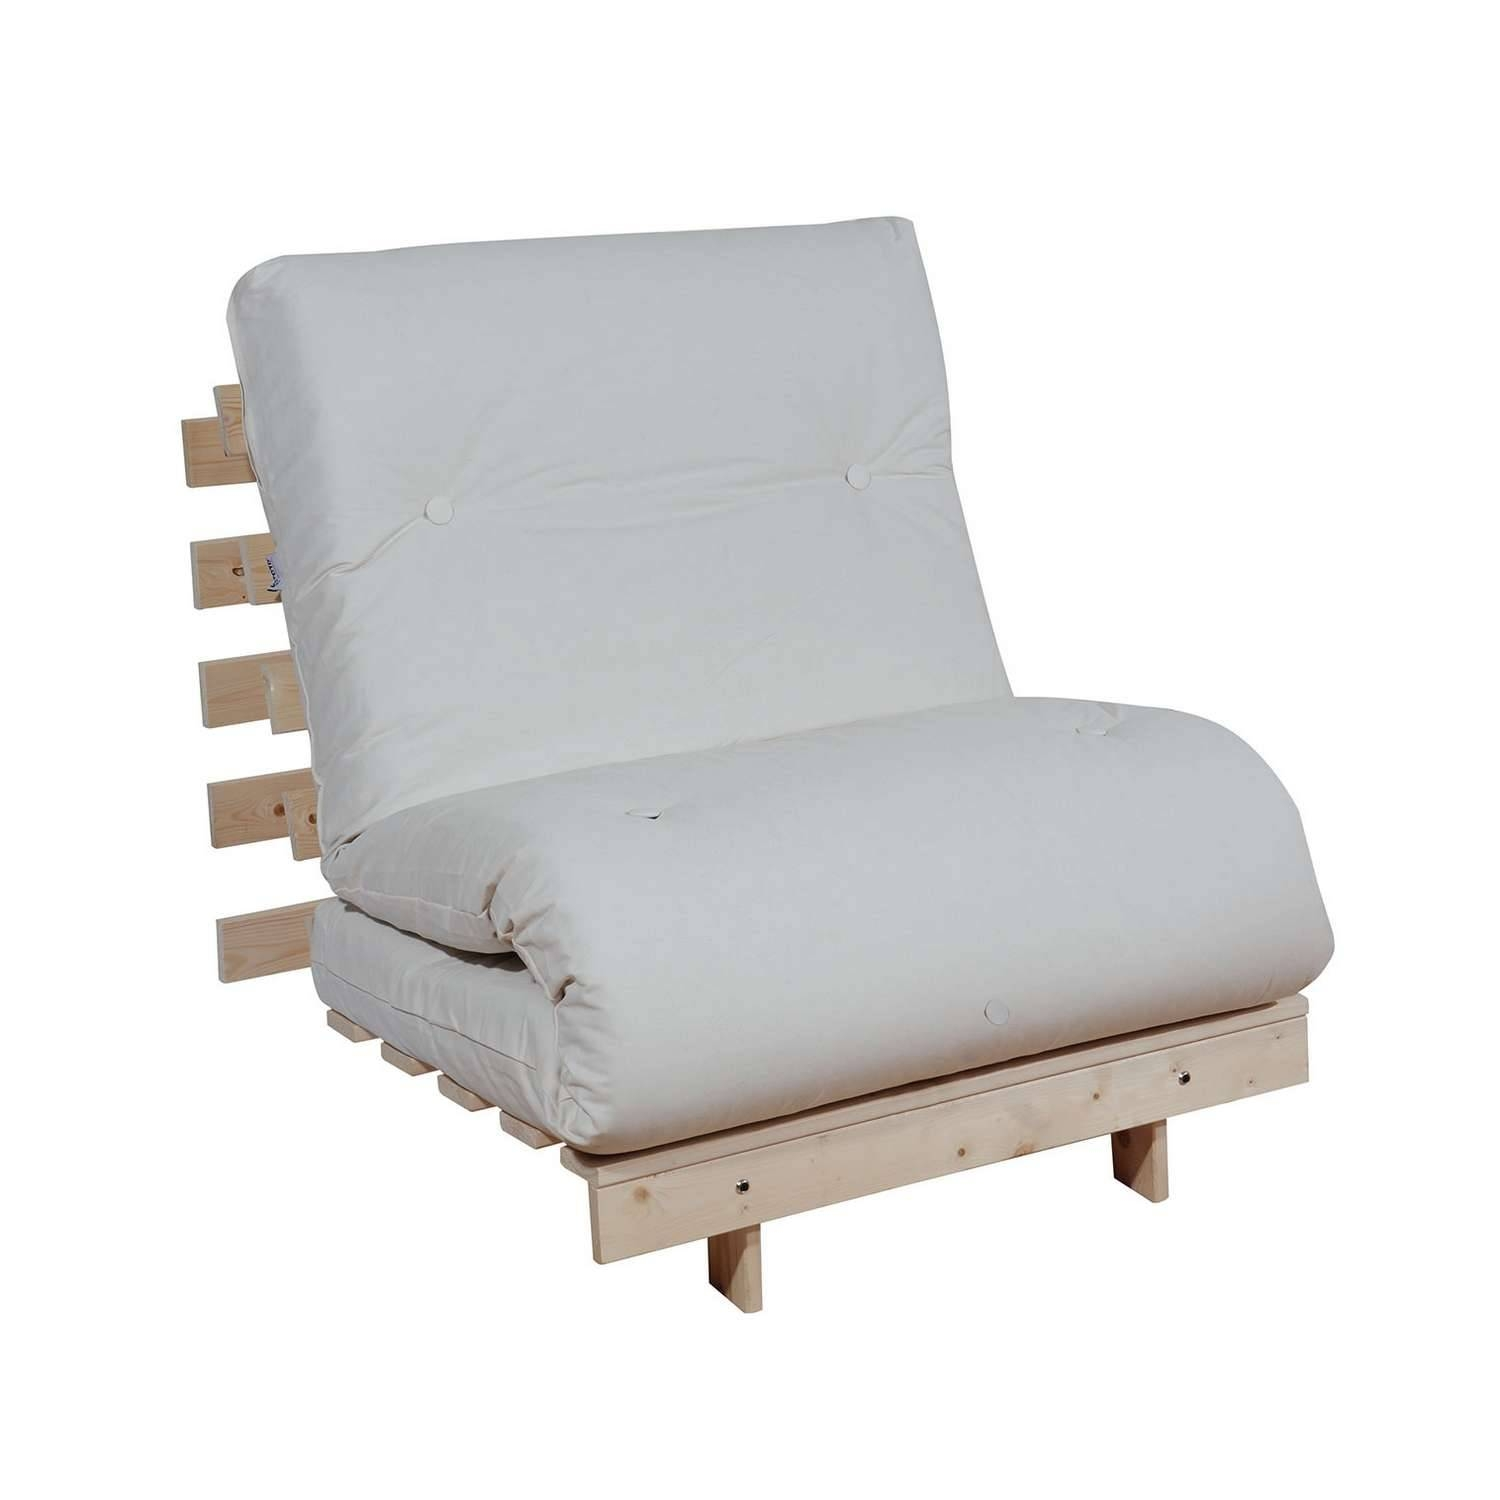 Wondrous Chair Bed Ebay Furniture Cool Lounger Sofa For Cozy And Theyellowbook Wood Chair Design Ideas Theyellowbookinfo